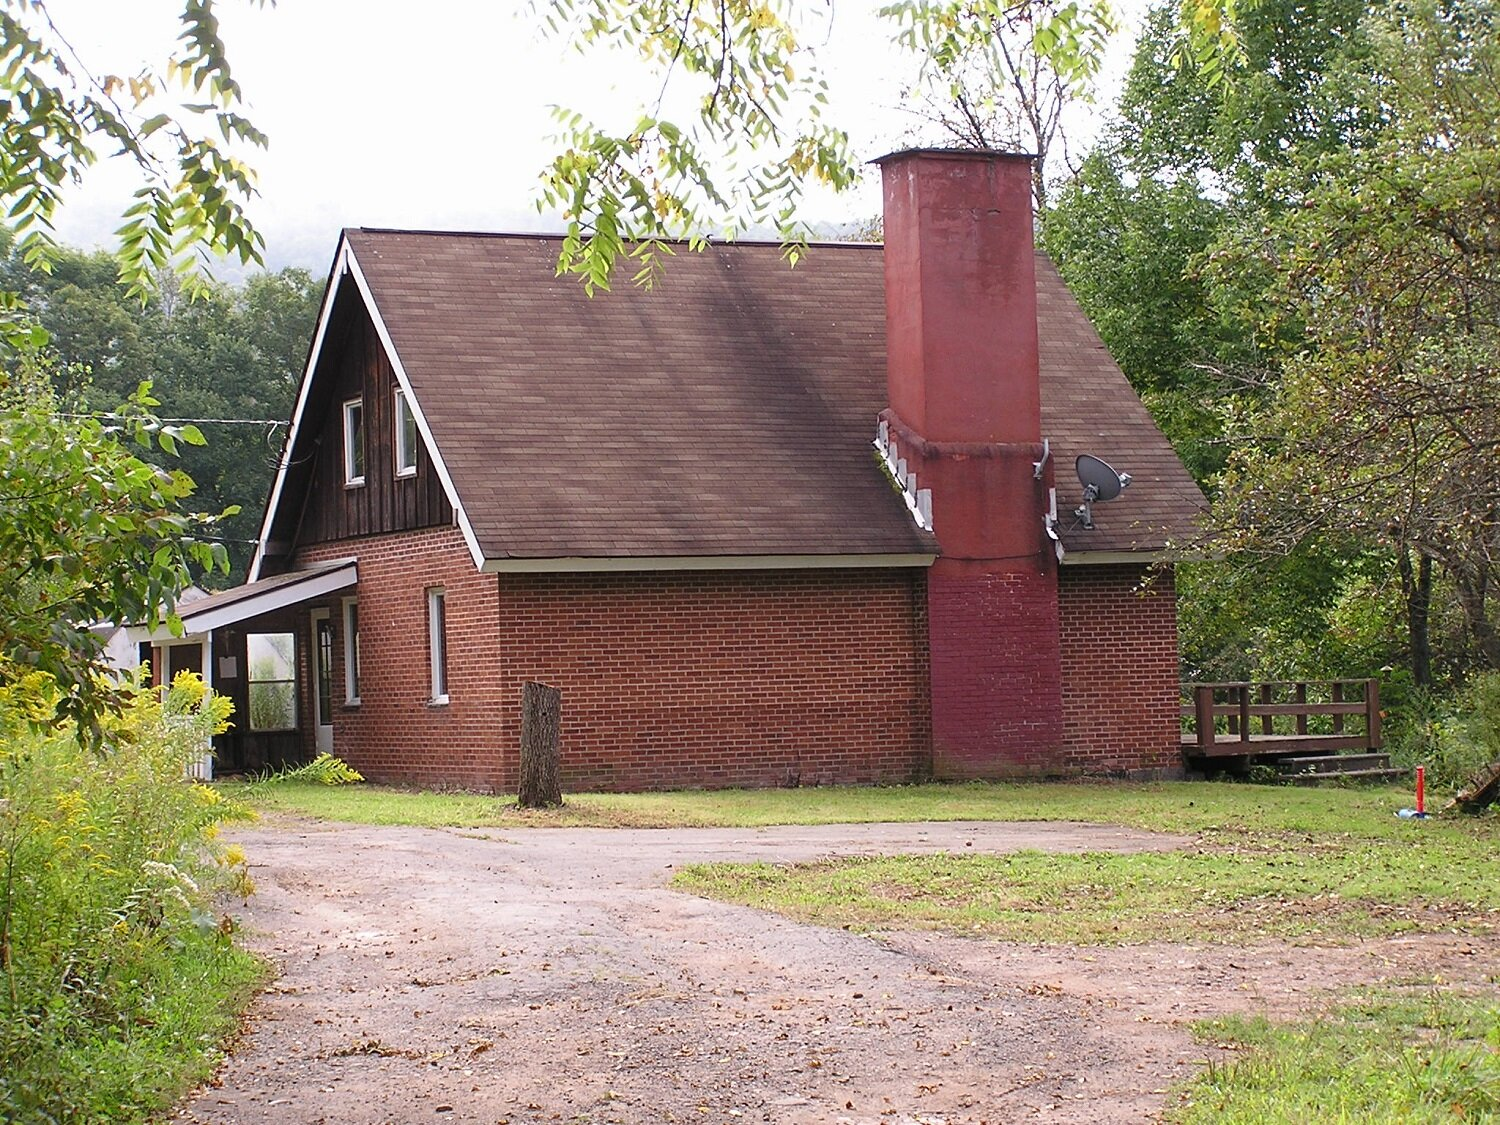 185,581 - (Was $200,000)2-Bedroom Brick Homeon 80 Beautiful Acres!